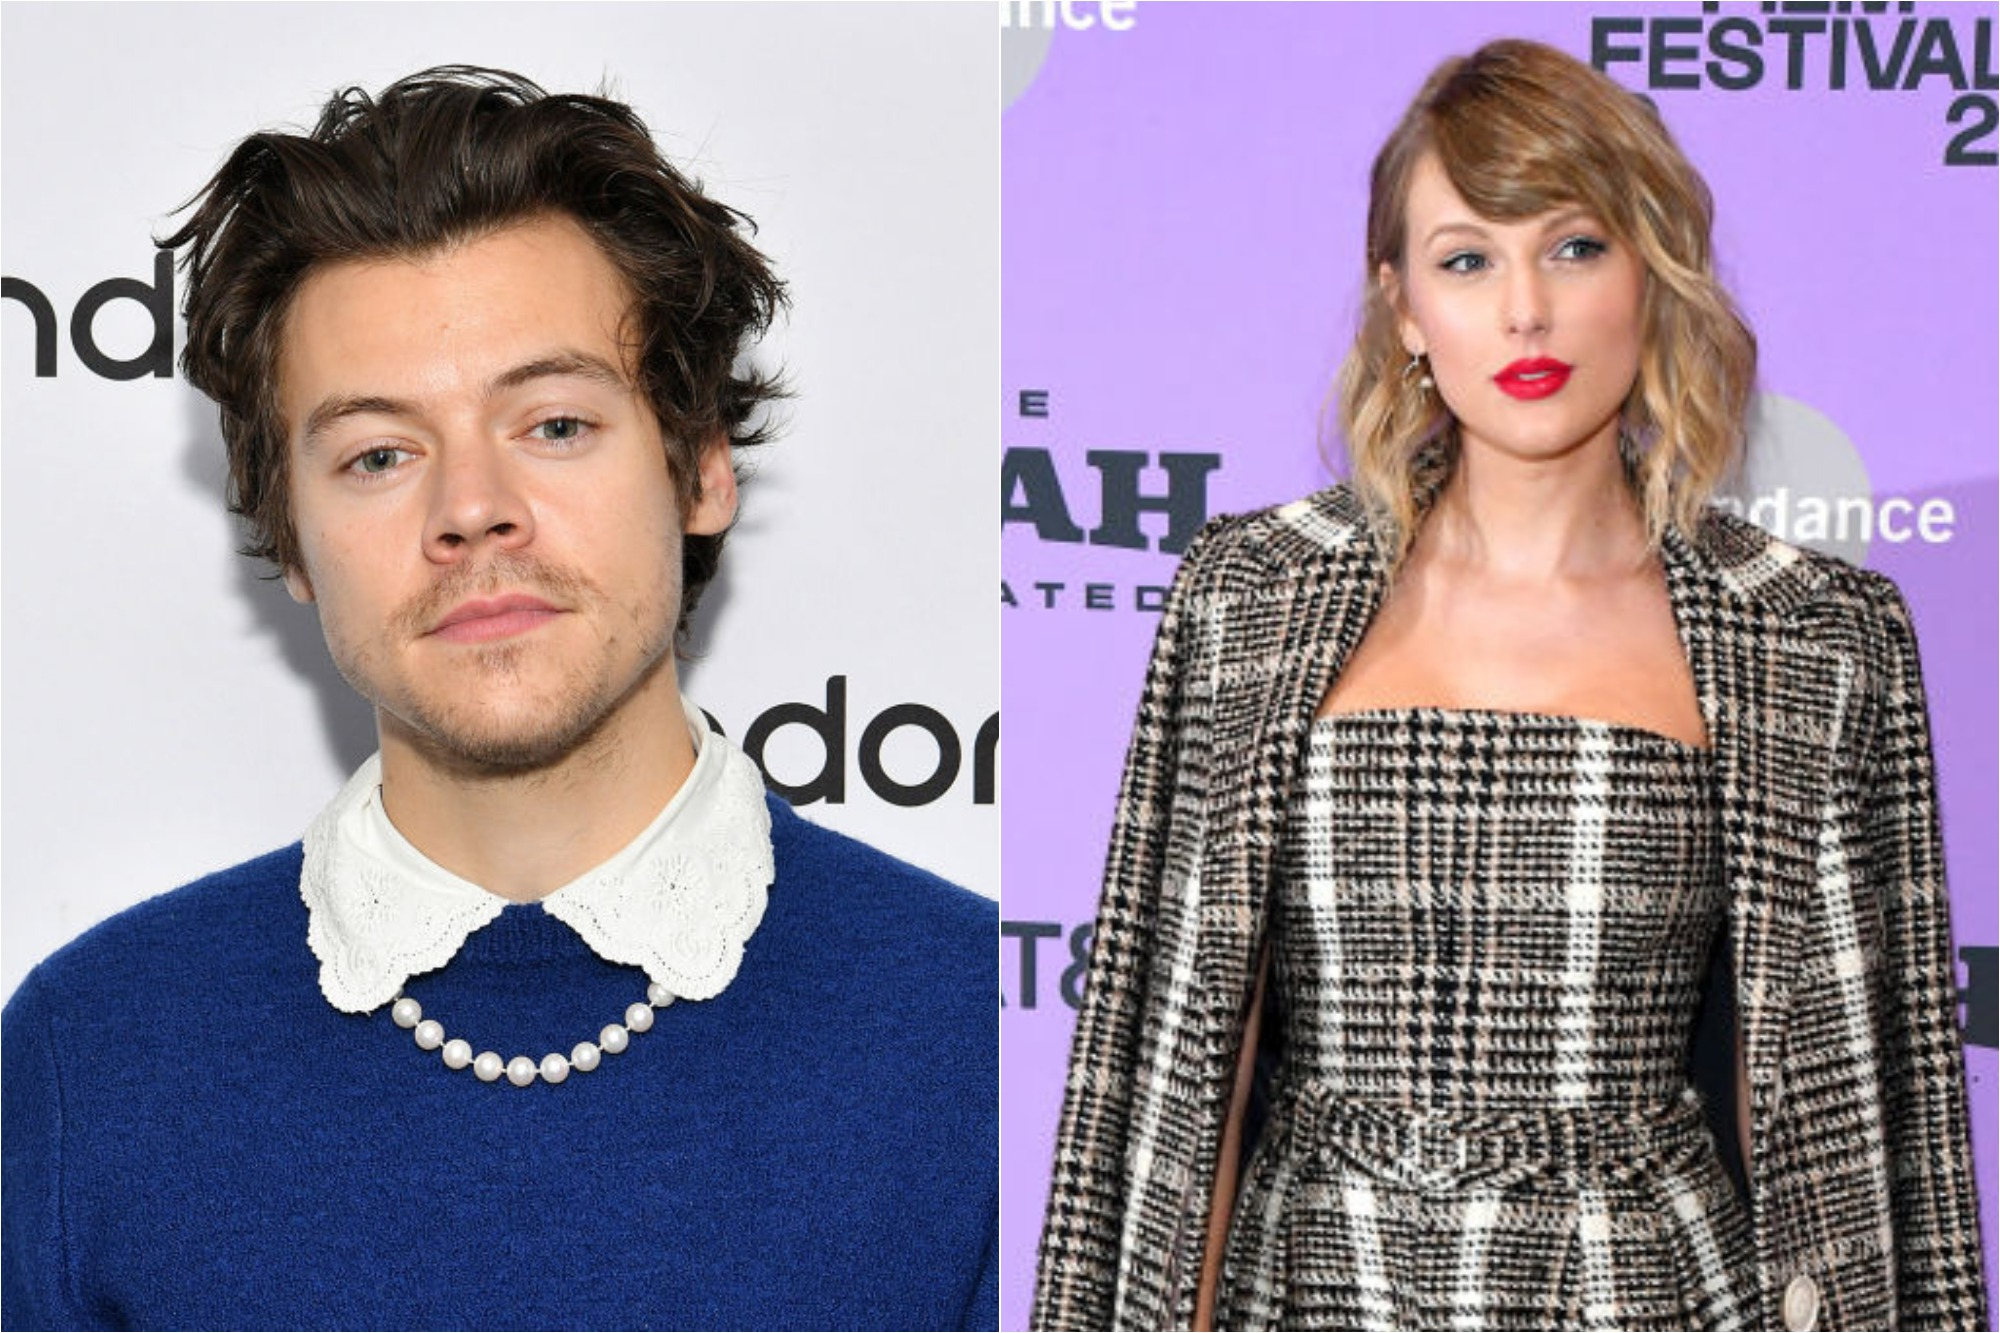 (L) Harry Styles at SiriusXM Studios on March 02, 2020 / (R) Taylor Swift at the Netflix premiere of 'Miss Americana' at Sundance Film Festival on January 23, 2020